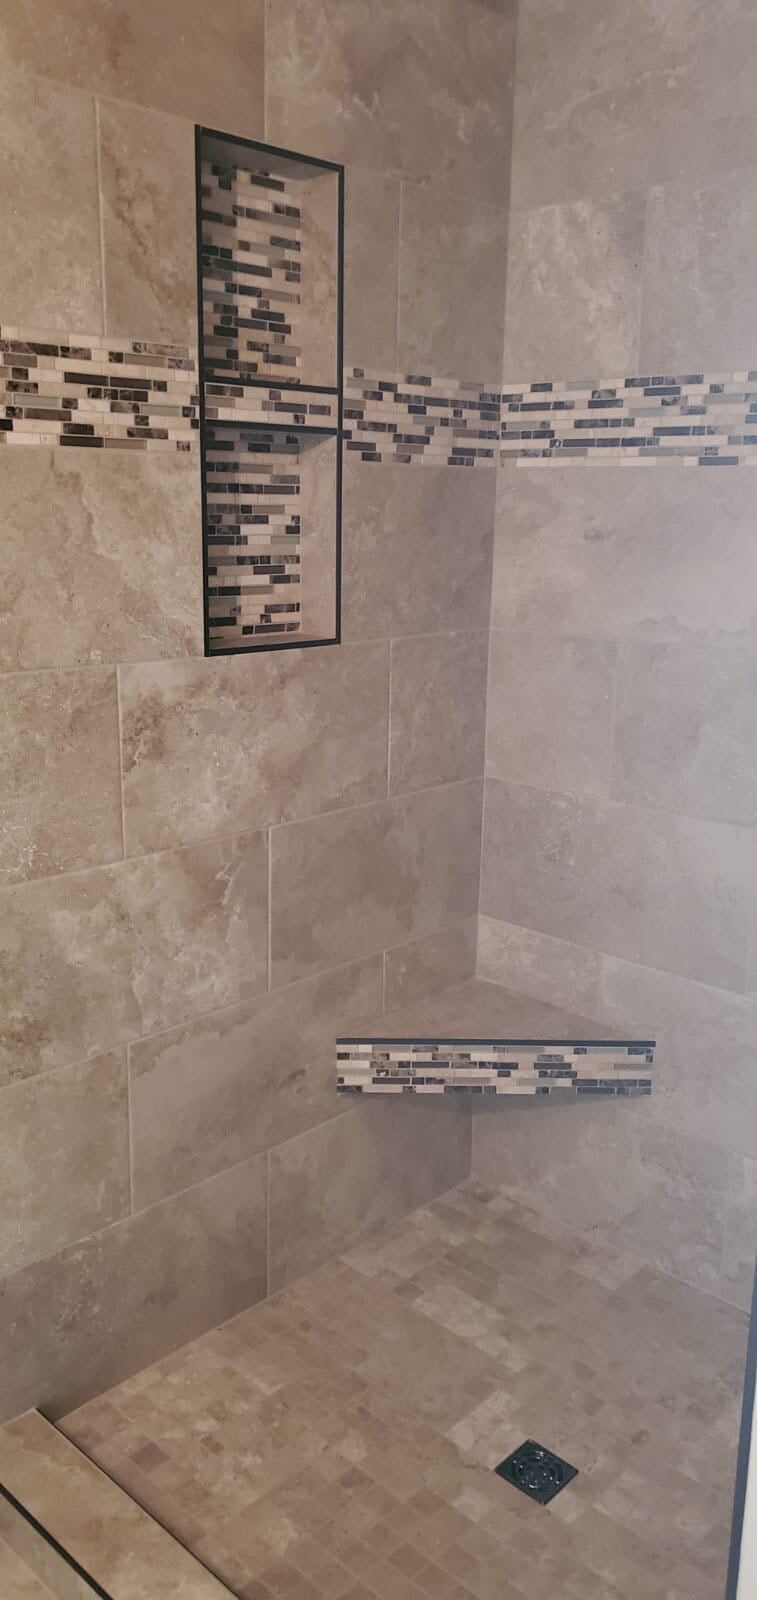 Shower tile from Roop's Carpet in Cabot, AR